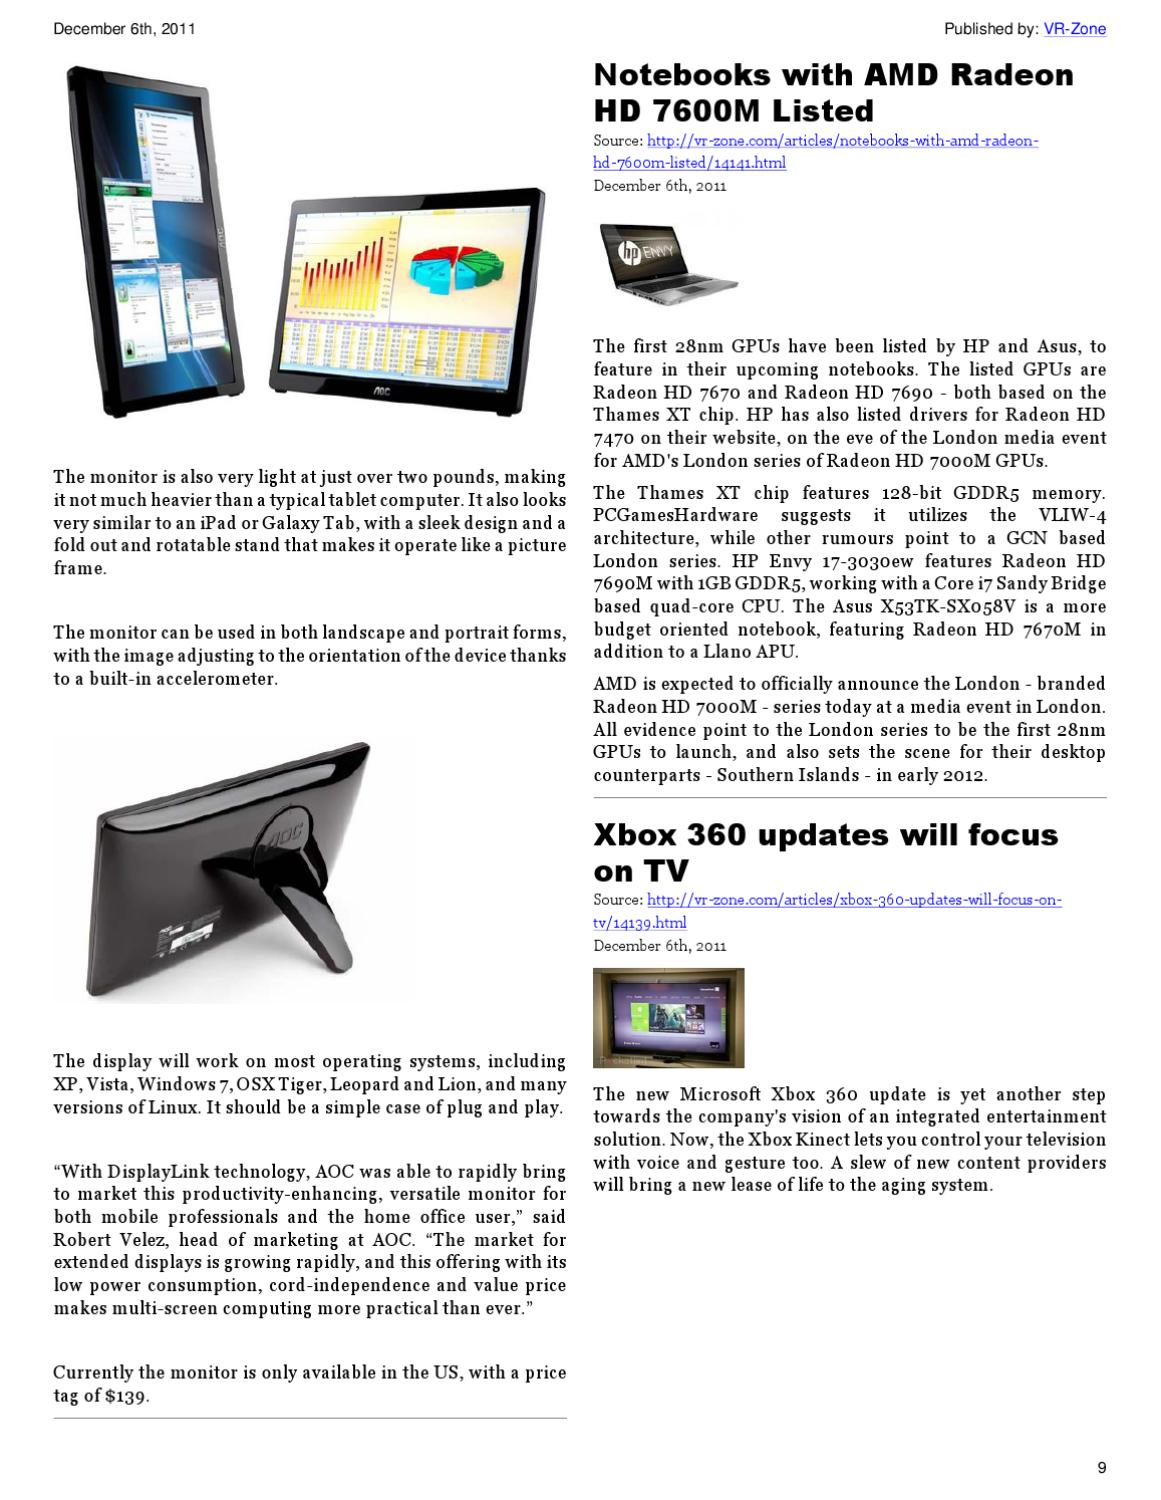 VR-Zone Tech News for the Geeks Dec 2011 Issue by VR Media Pte  Ltd